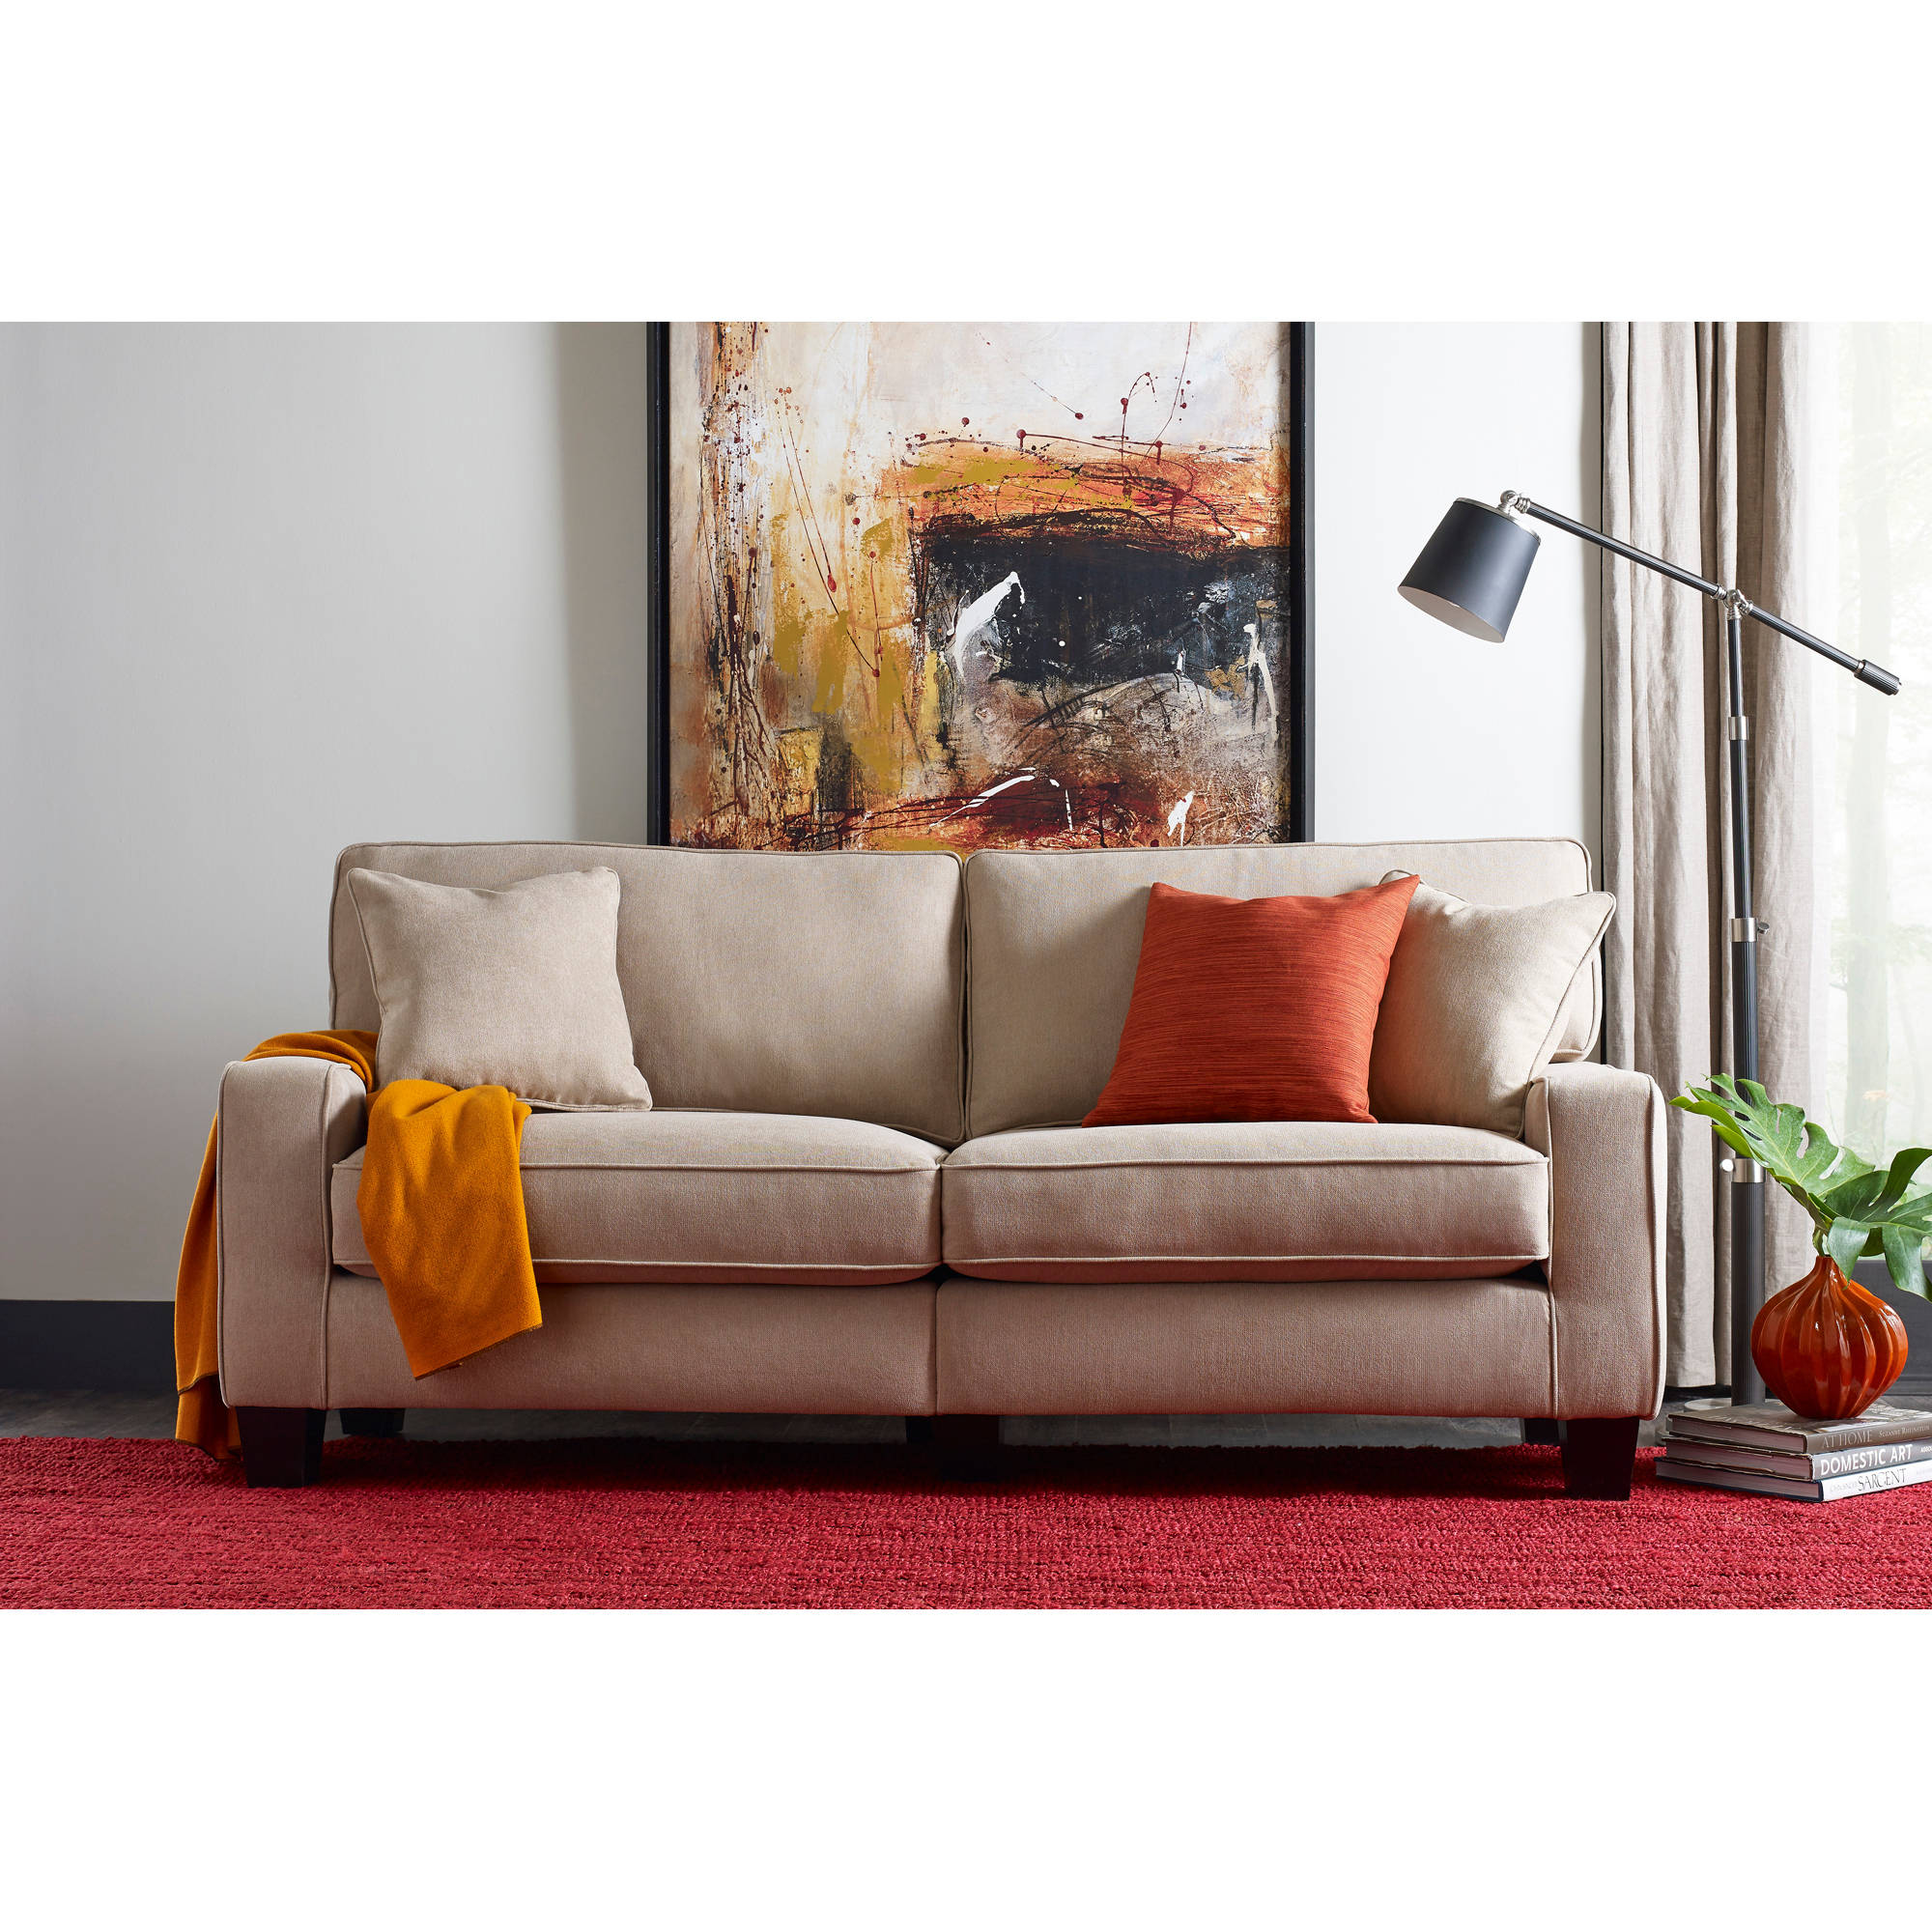 "Serta RTA Palisades Collection 78"" Sofa, Multiple Colors"